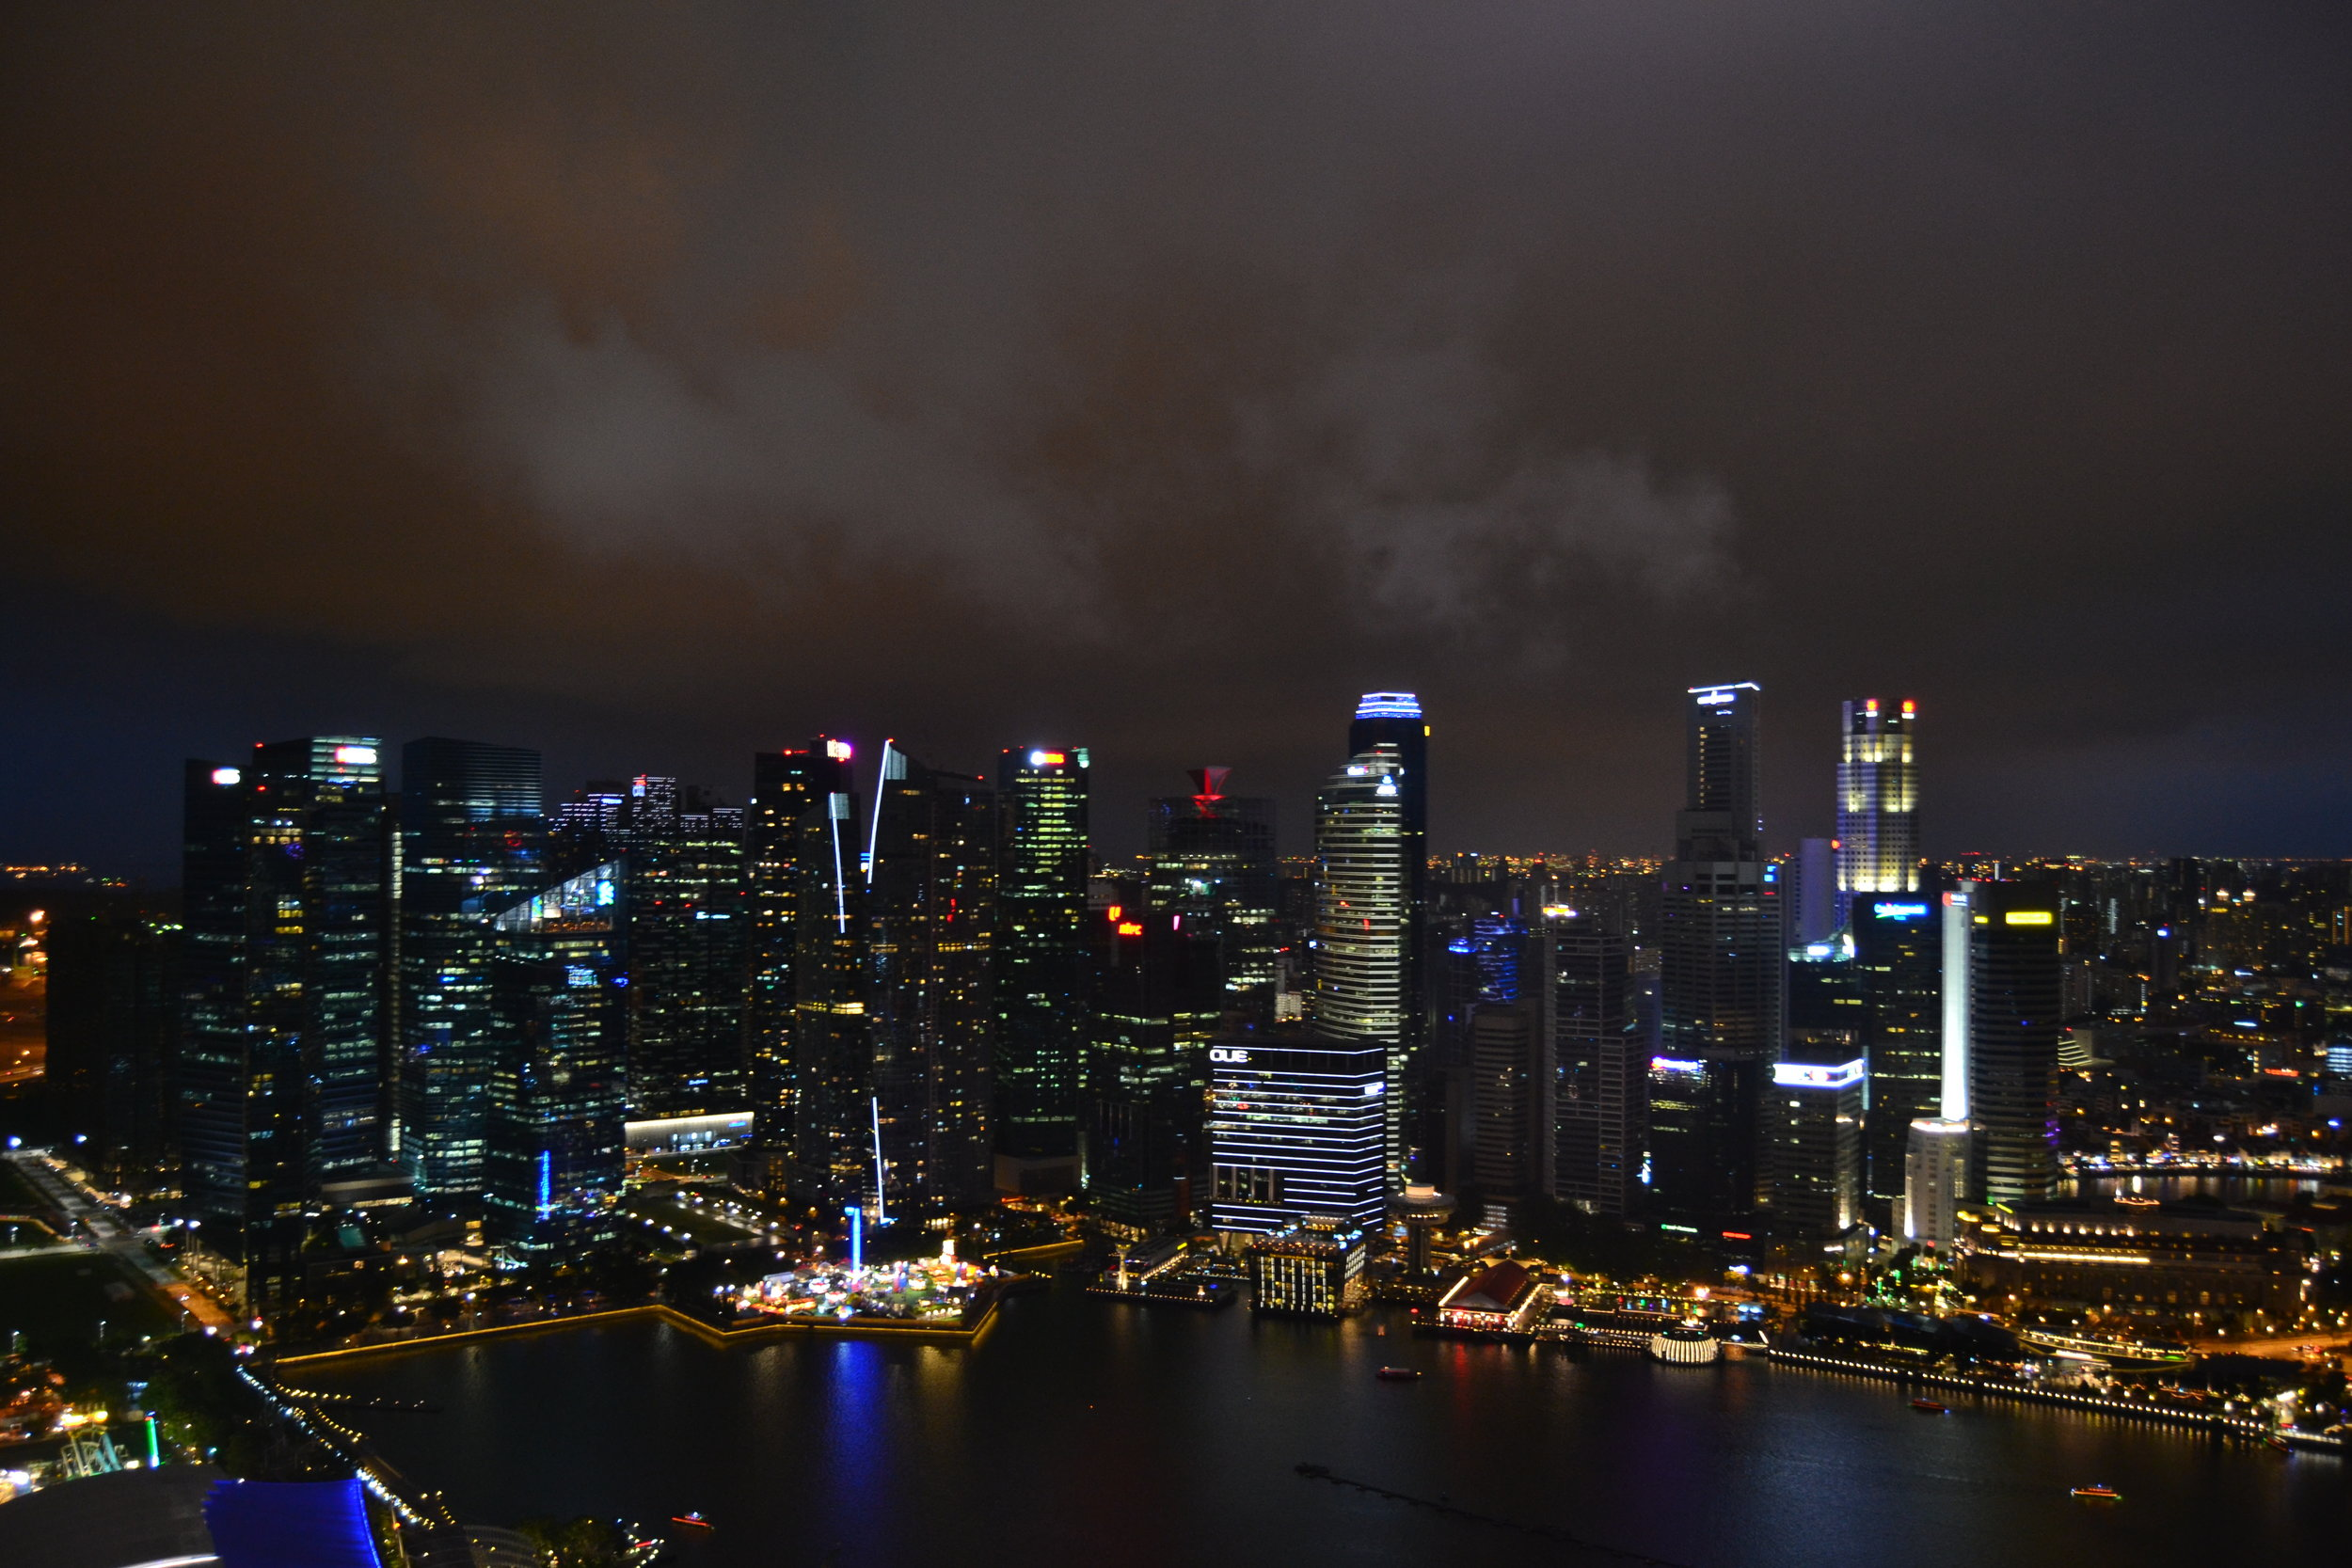 A view of downtown Singapore from the Marina Bay Sands Observation Deck